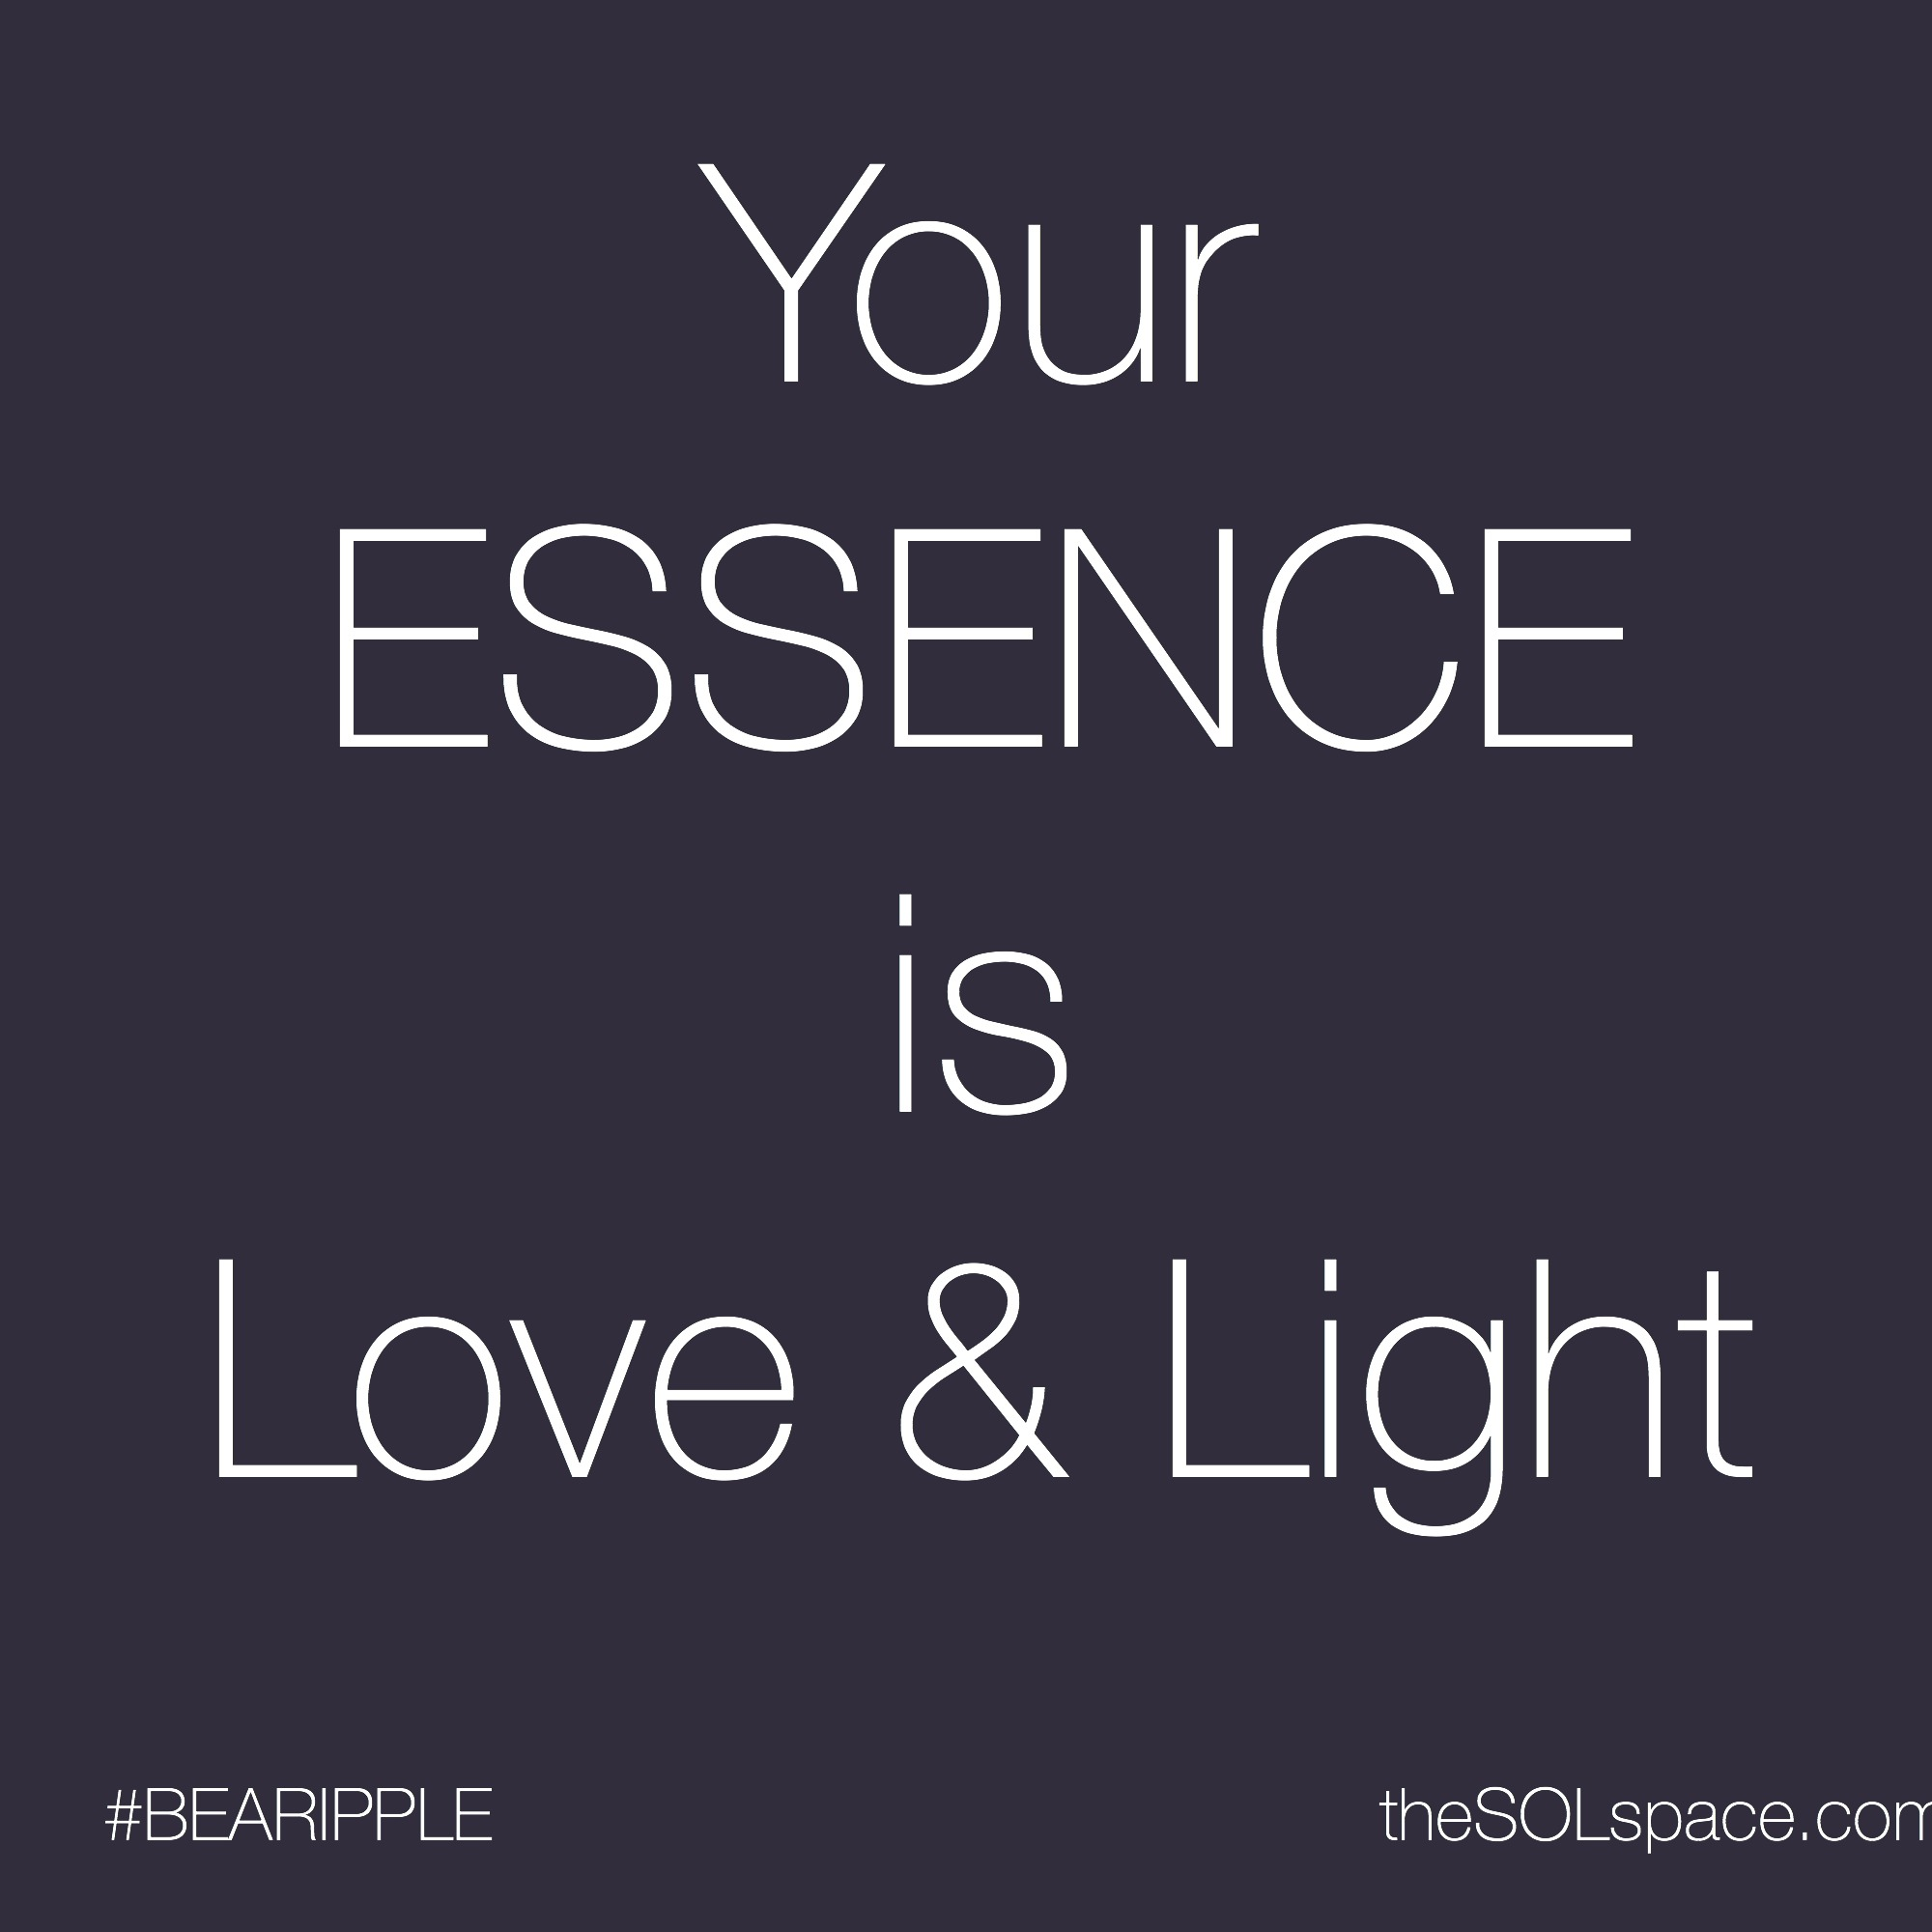 #BeARipple Your ESSENCE is Love & Light @theSOLspace